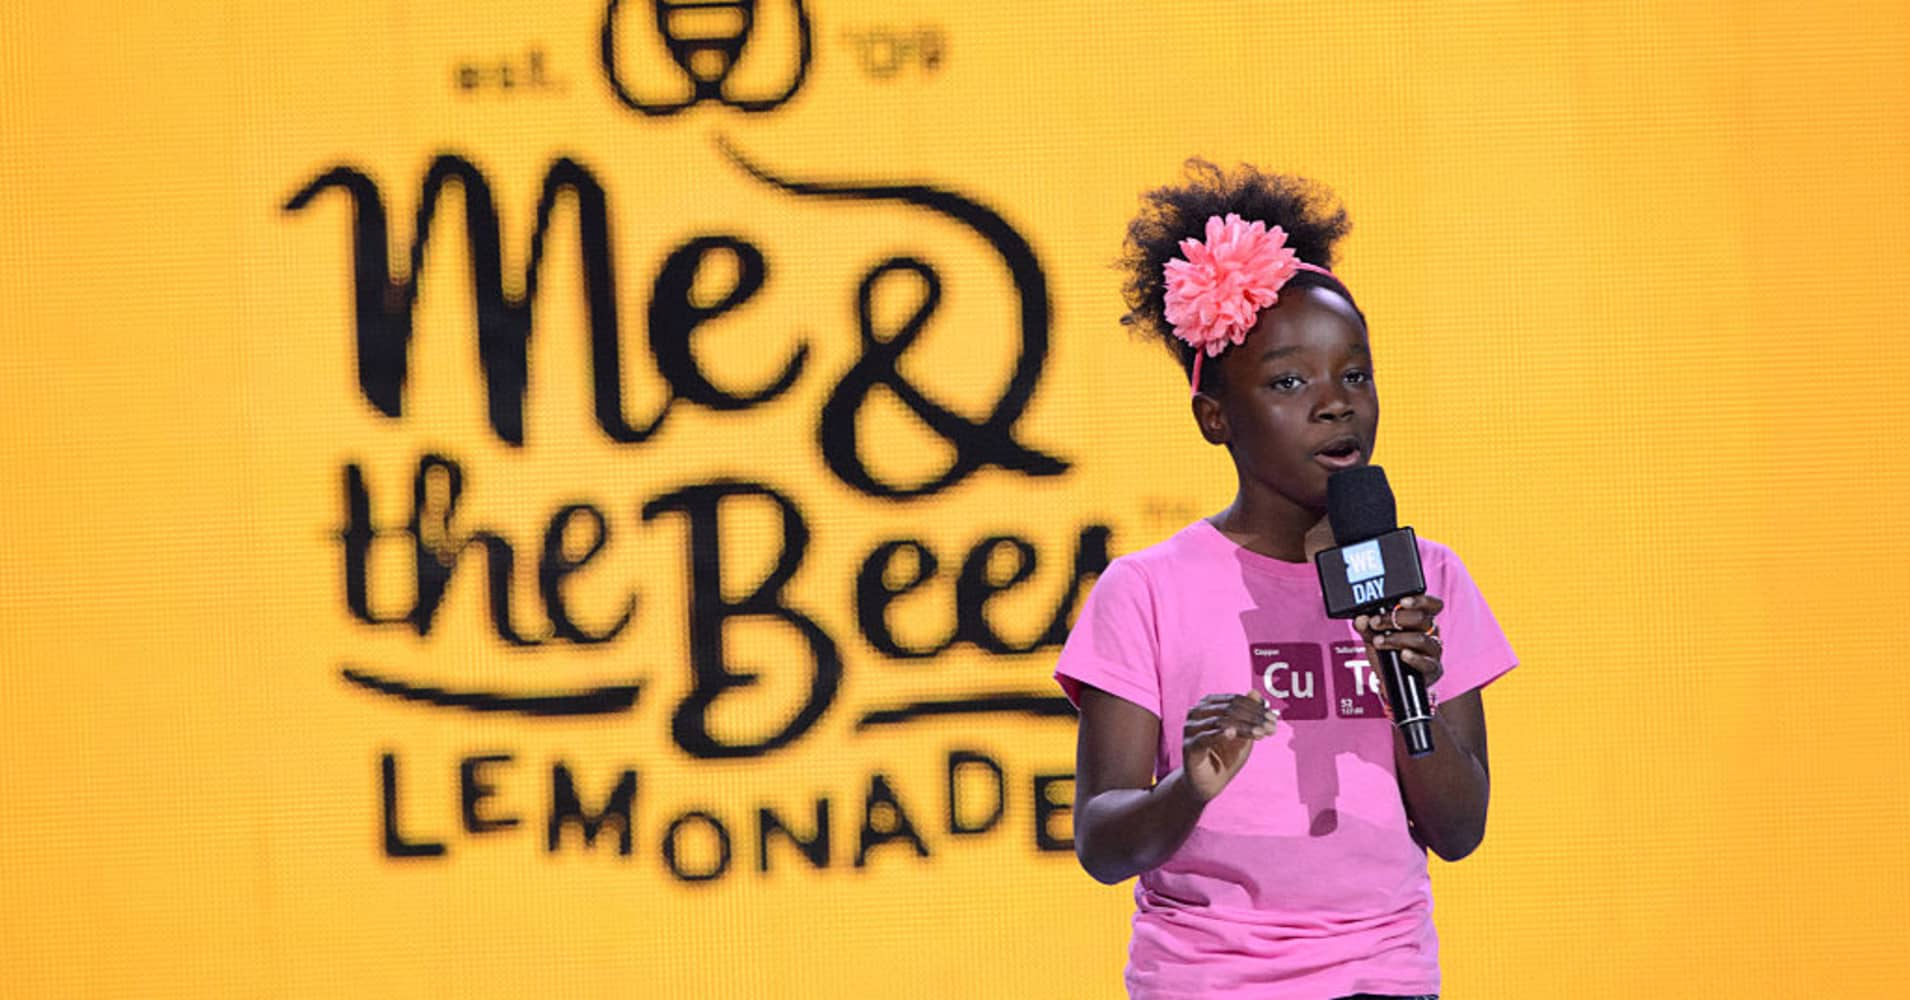 Mikaila Ulmer, founder and CEO of Me & the Bees Lemonade.